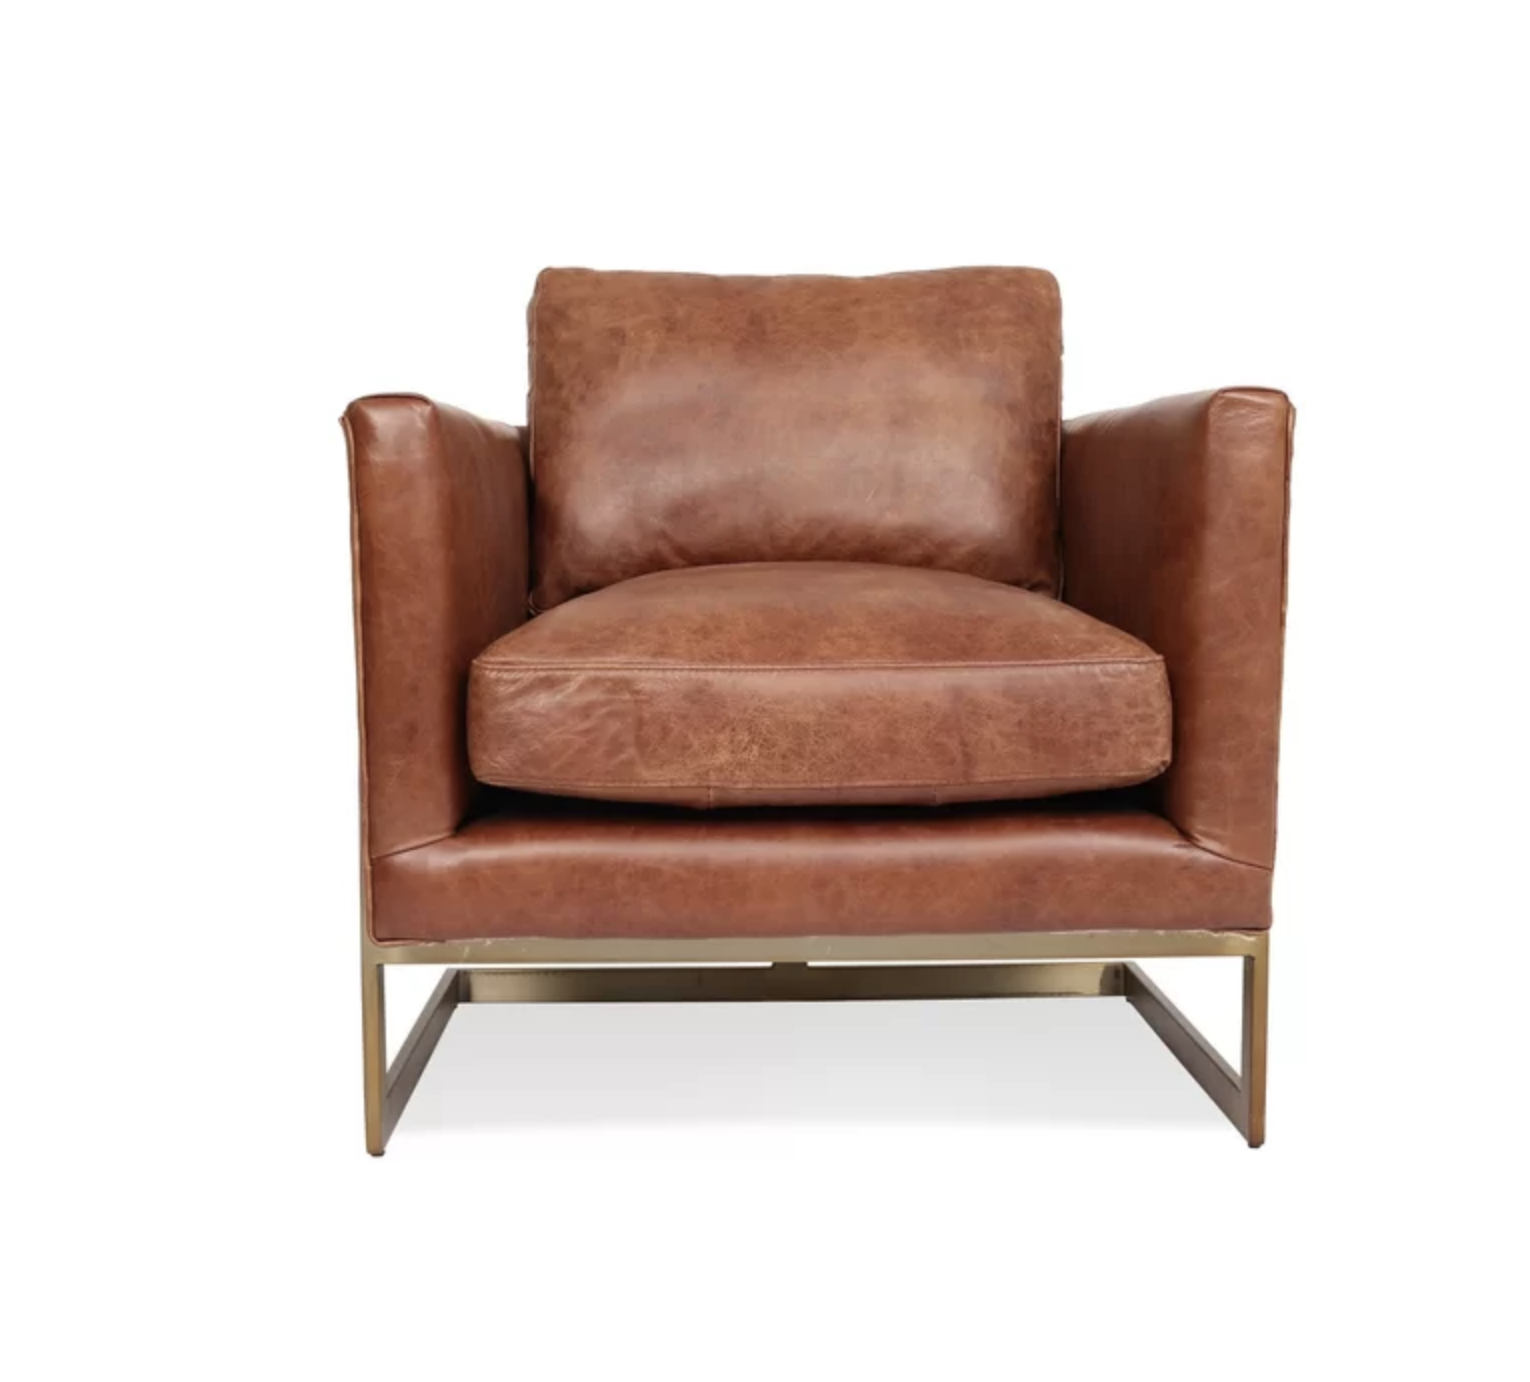 Leather Accent Chair with Gold Metal Base Frame Accent Chair Roundup | Modern, Industrial, Rustic, Beach, Boho Accent and Arm Chairs | Miranda Schroeder Blog